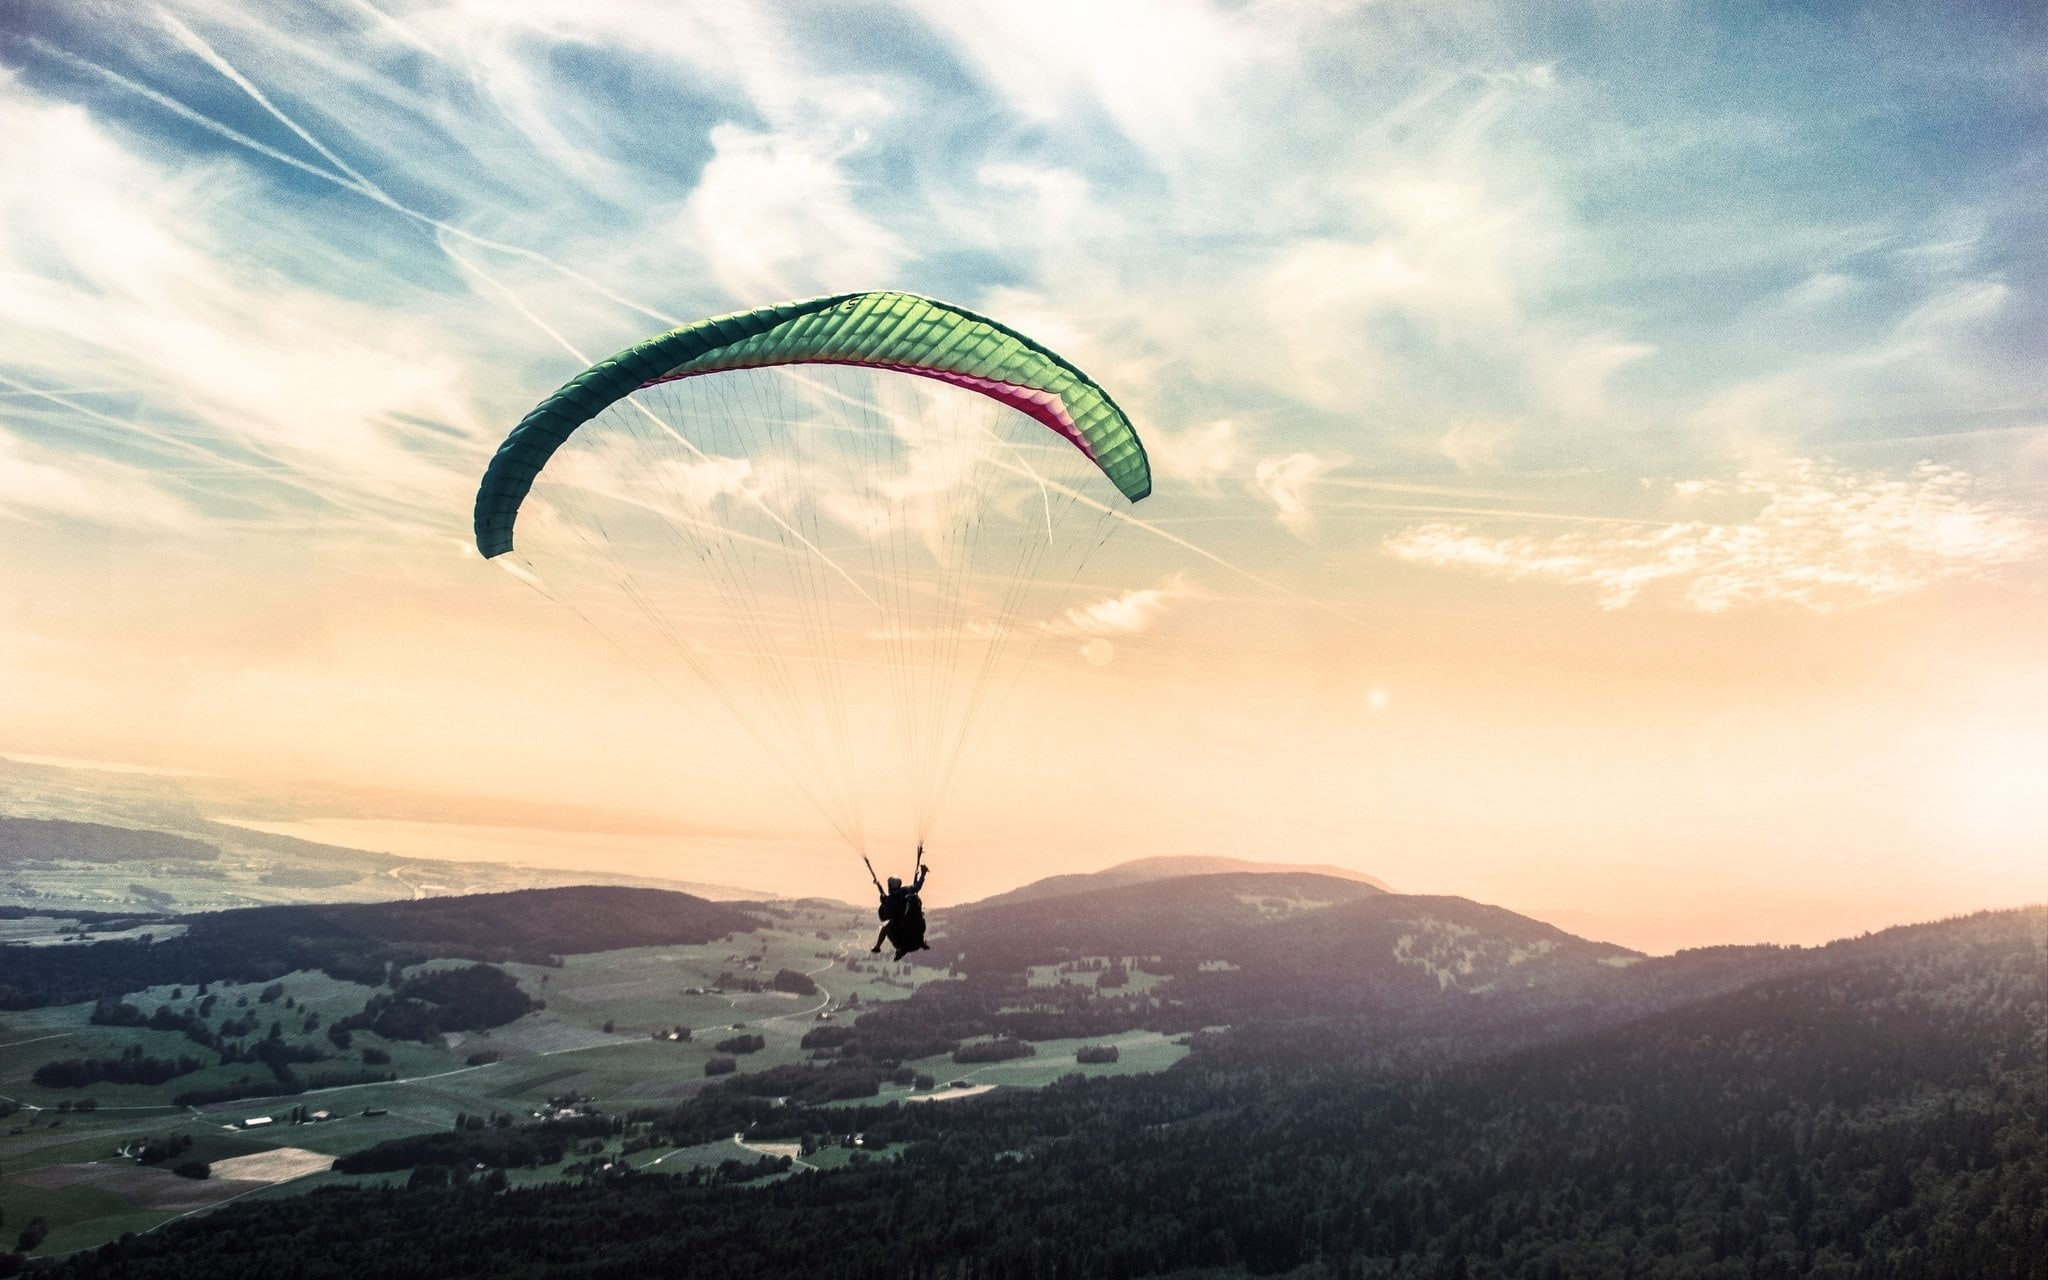 public://media/canva_-_extreme_paragliding_in_nature.jpg